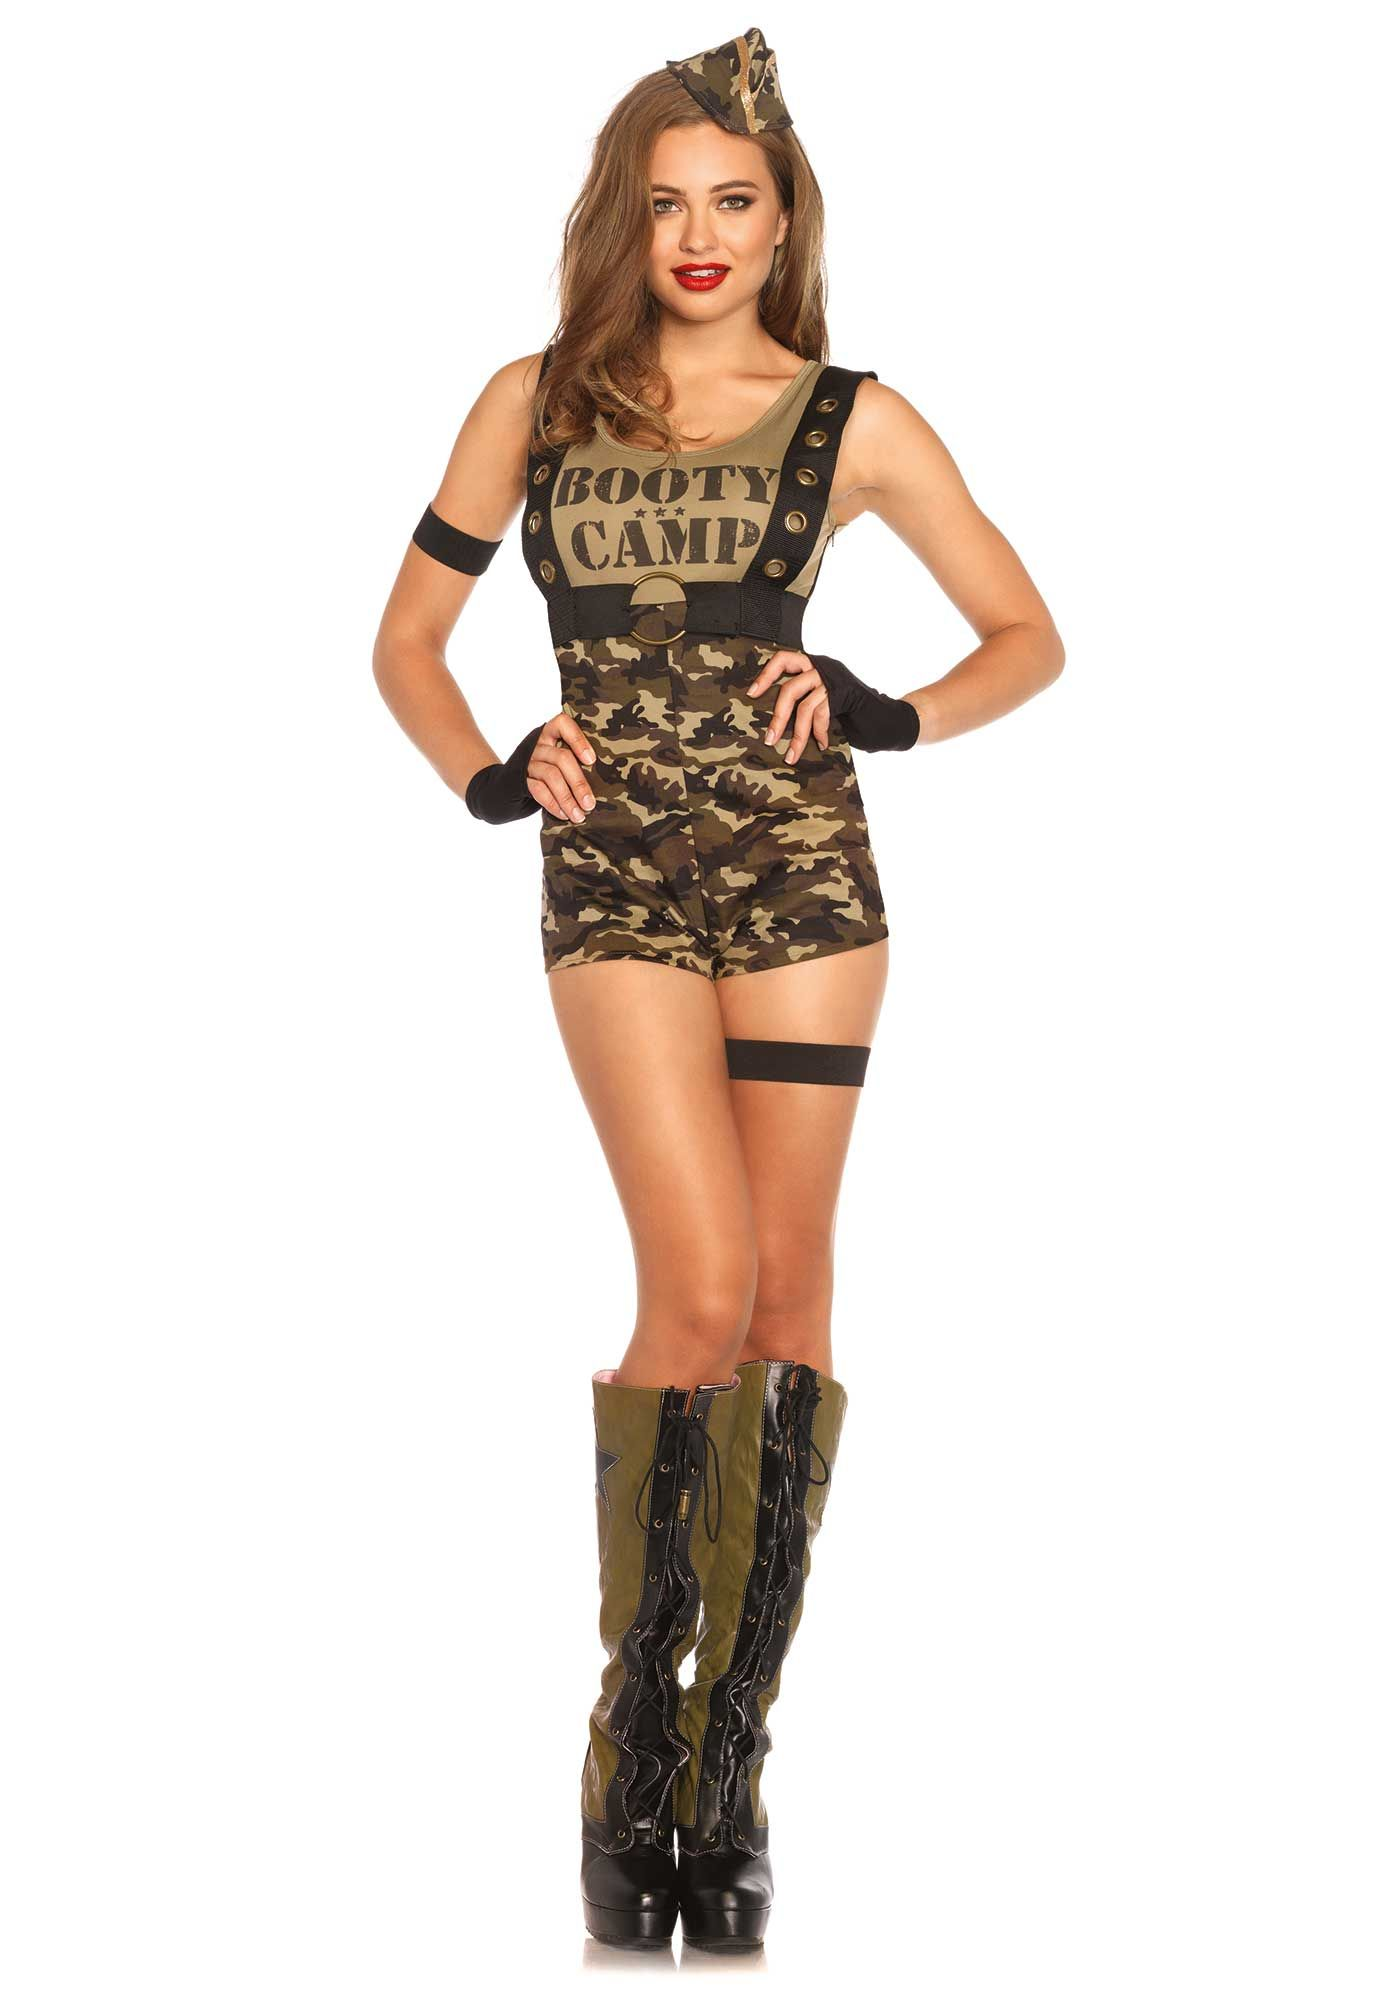 leg avenue beauty camp cutie costume army soldier military camouflage army halloween costumesarmy girl - Soldier Girl Halloween Costume